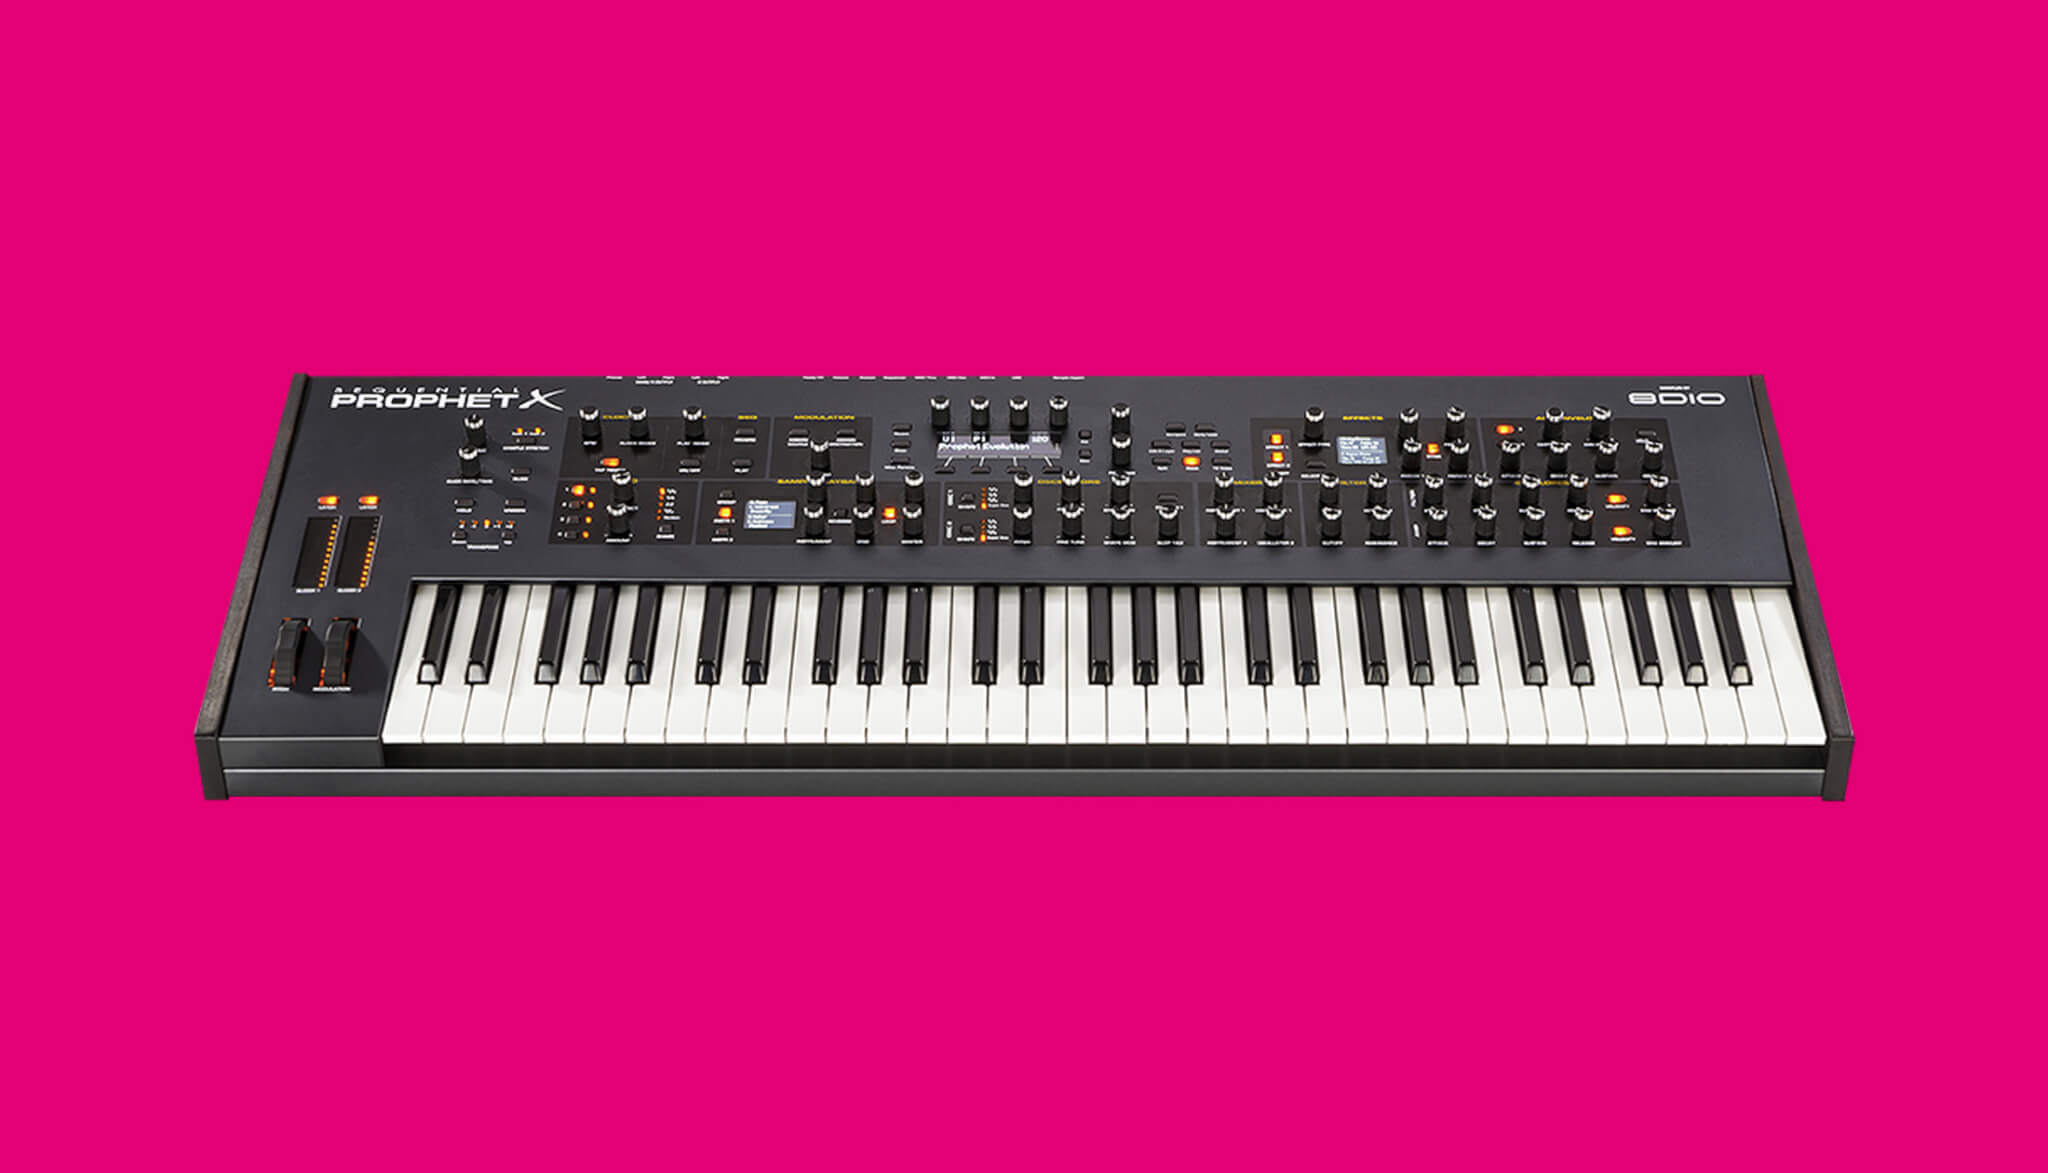 Dave Smith Instruments Prophet X Synthesizer Polysynth 16-voice sampler